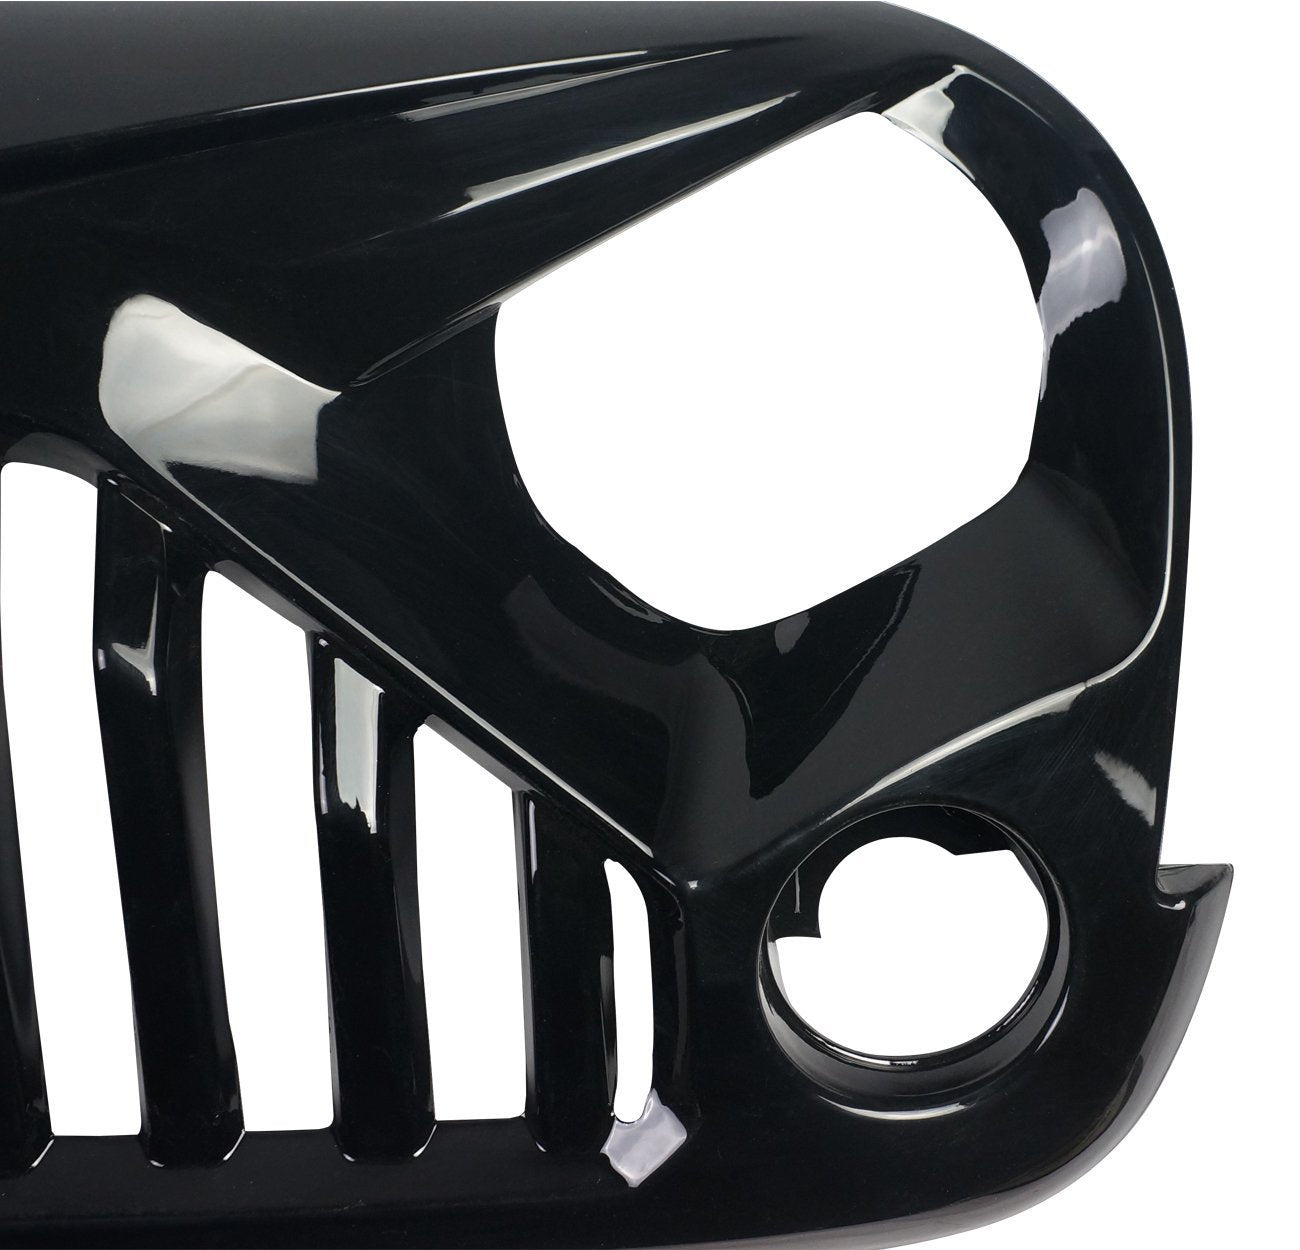 Glossy Black Gladiator Grille for Jeep Wrangler JK 07-17